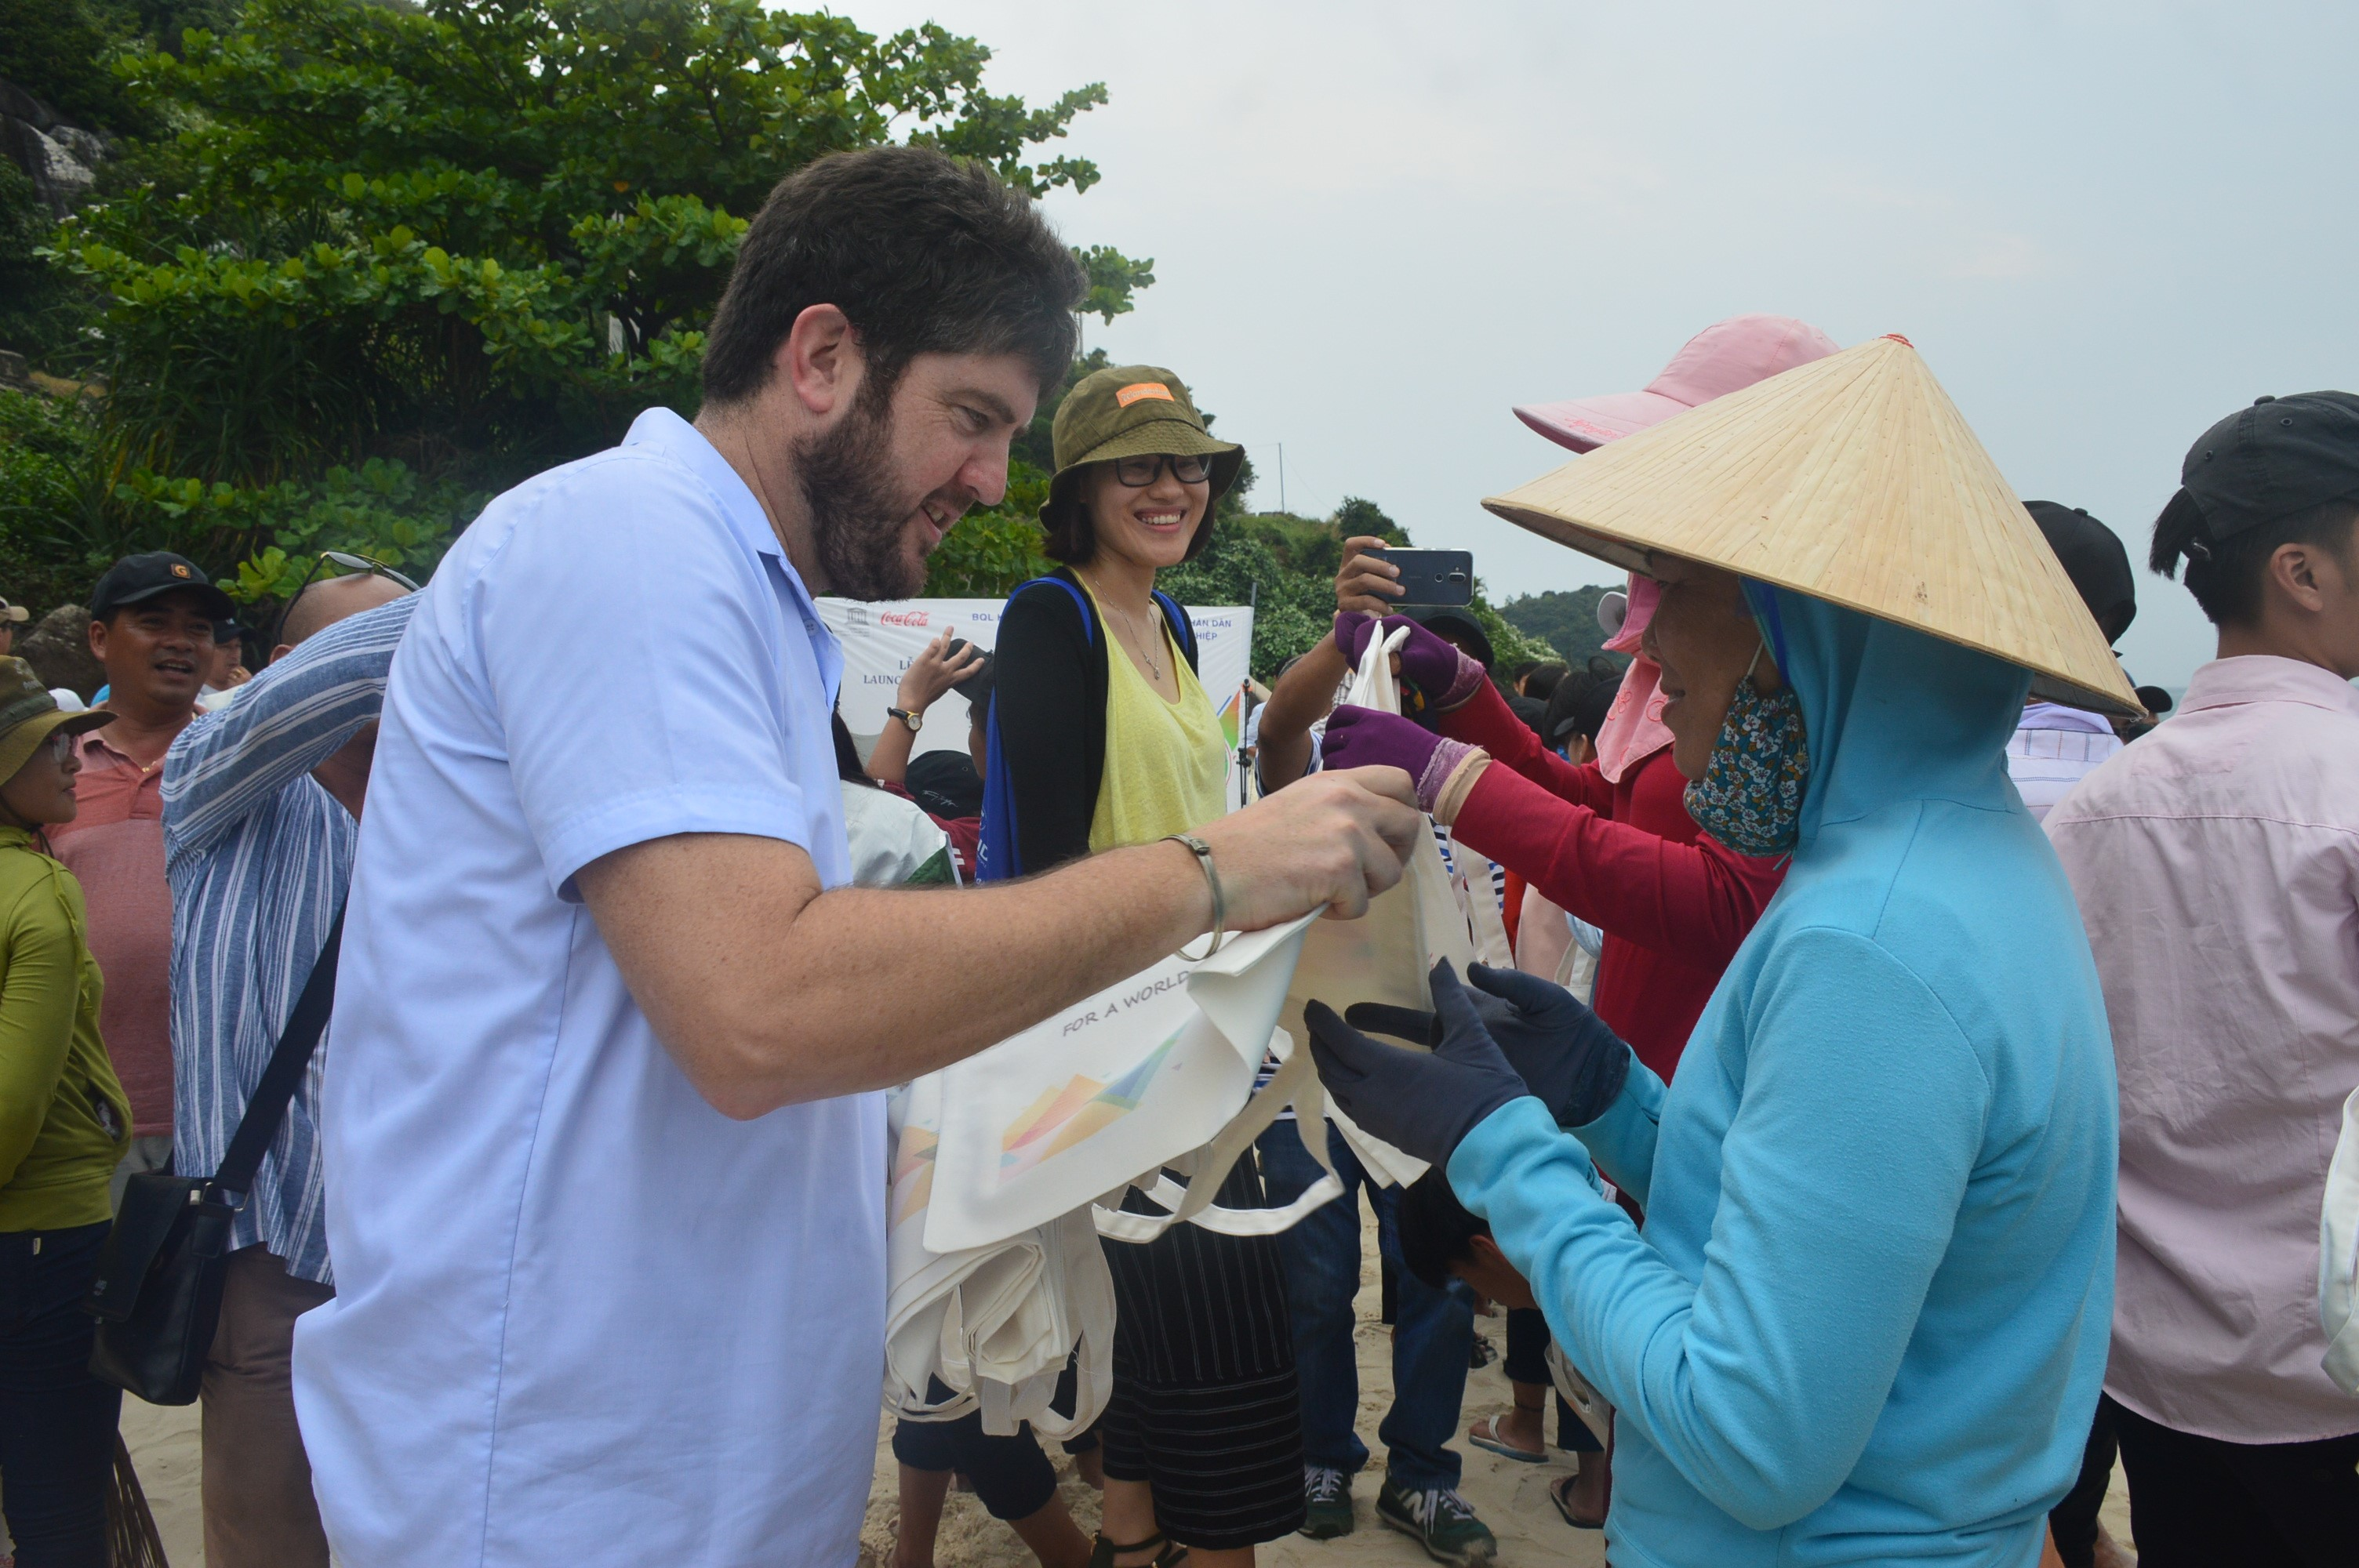 Mr. Michael Croft – Head of UNESCO Office in Vietnam gives Cham Islands' residents eco-bags to collect garbage.